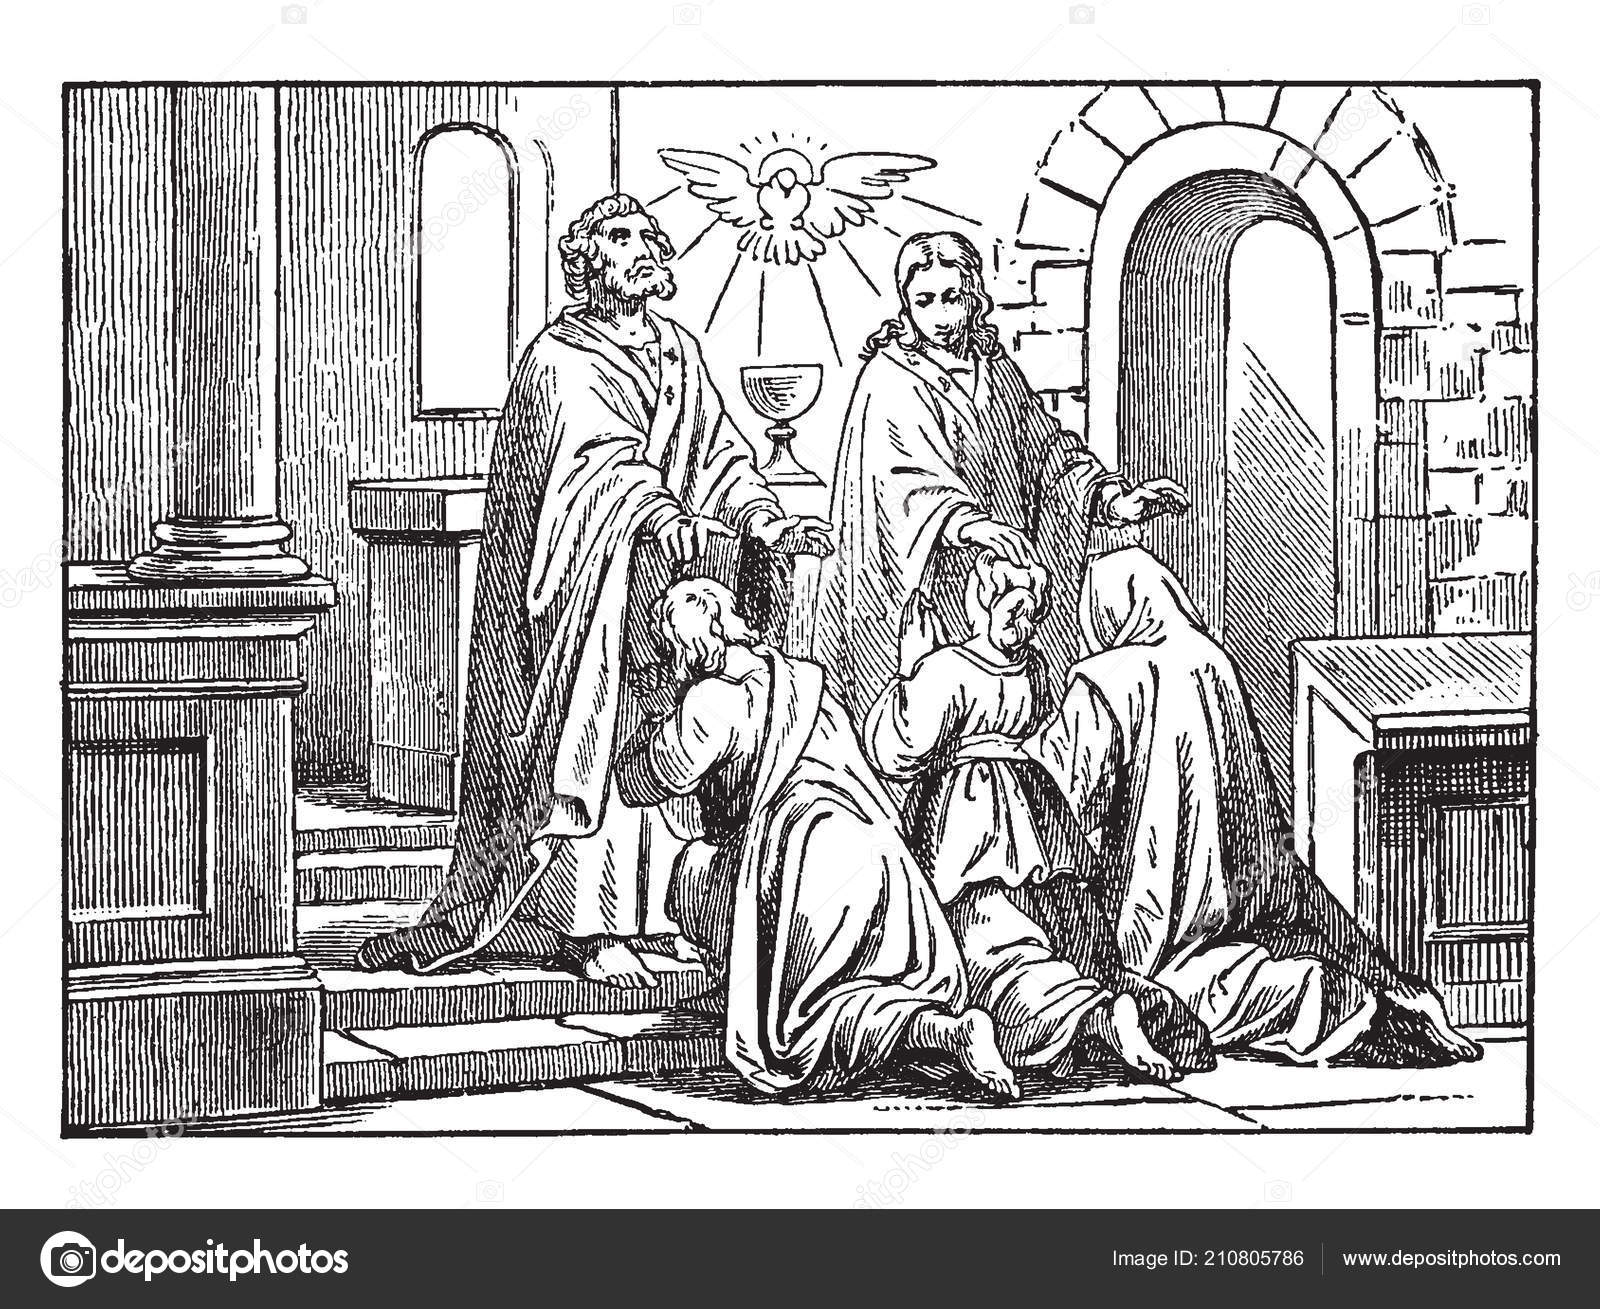 In this picture shown peter and john lay their hands on peoples who convert his religion christianize converts vintage line drawing or engraving